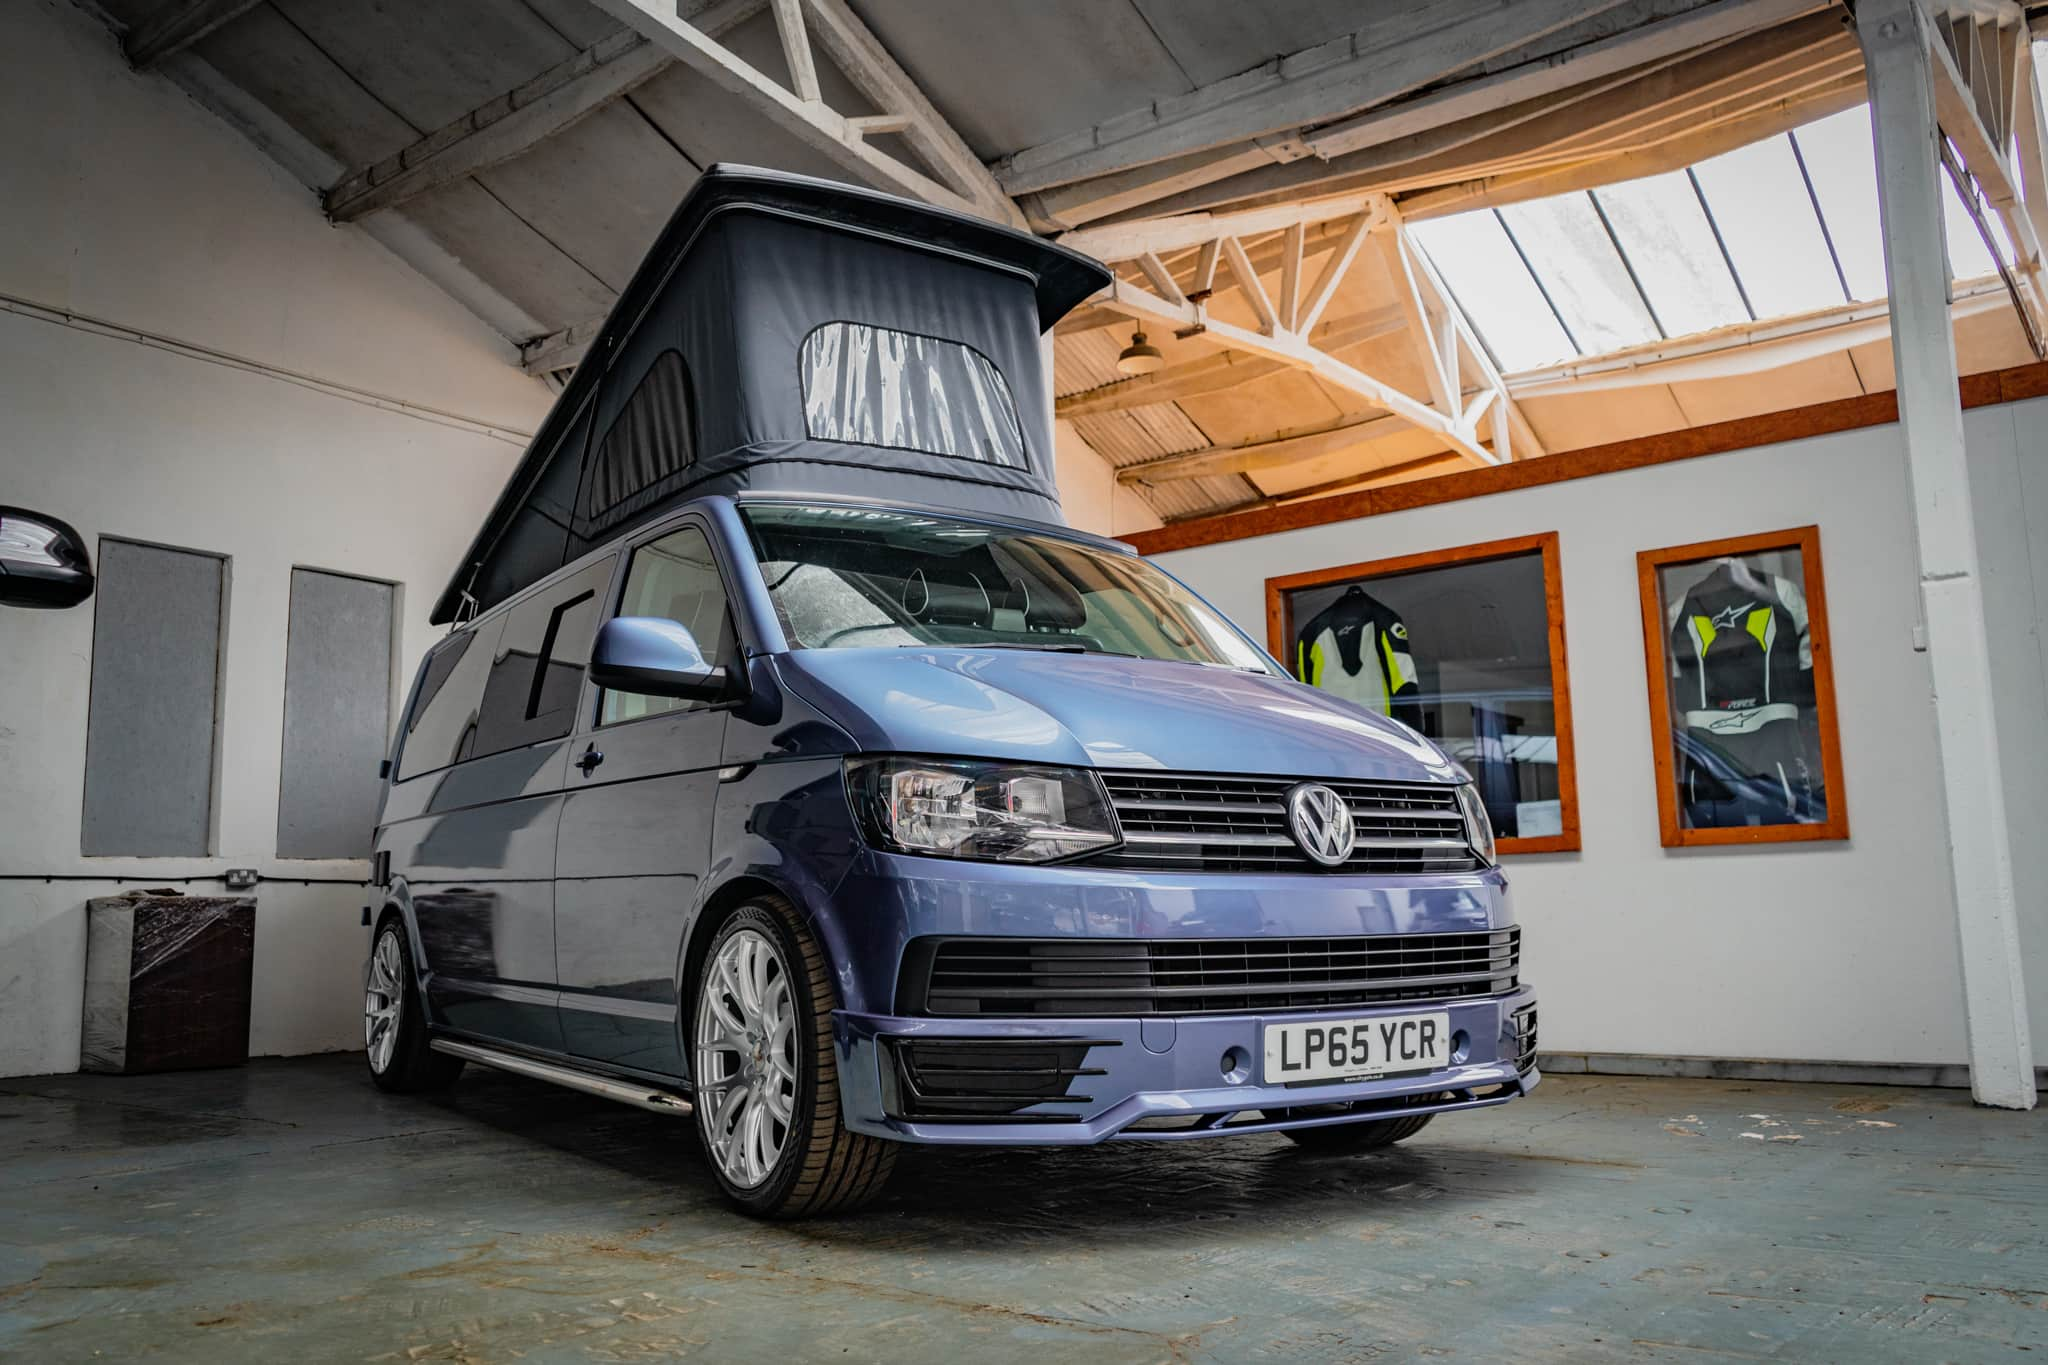 VW T6 2.0 TDI - Off Grid with Pop Top - Acapulco blue - 26th July